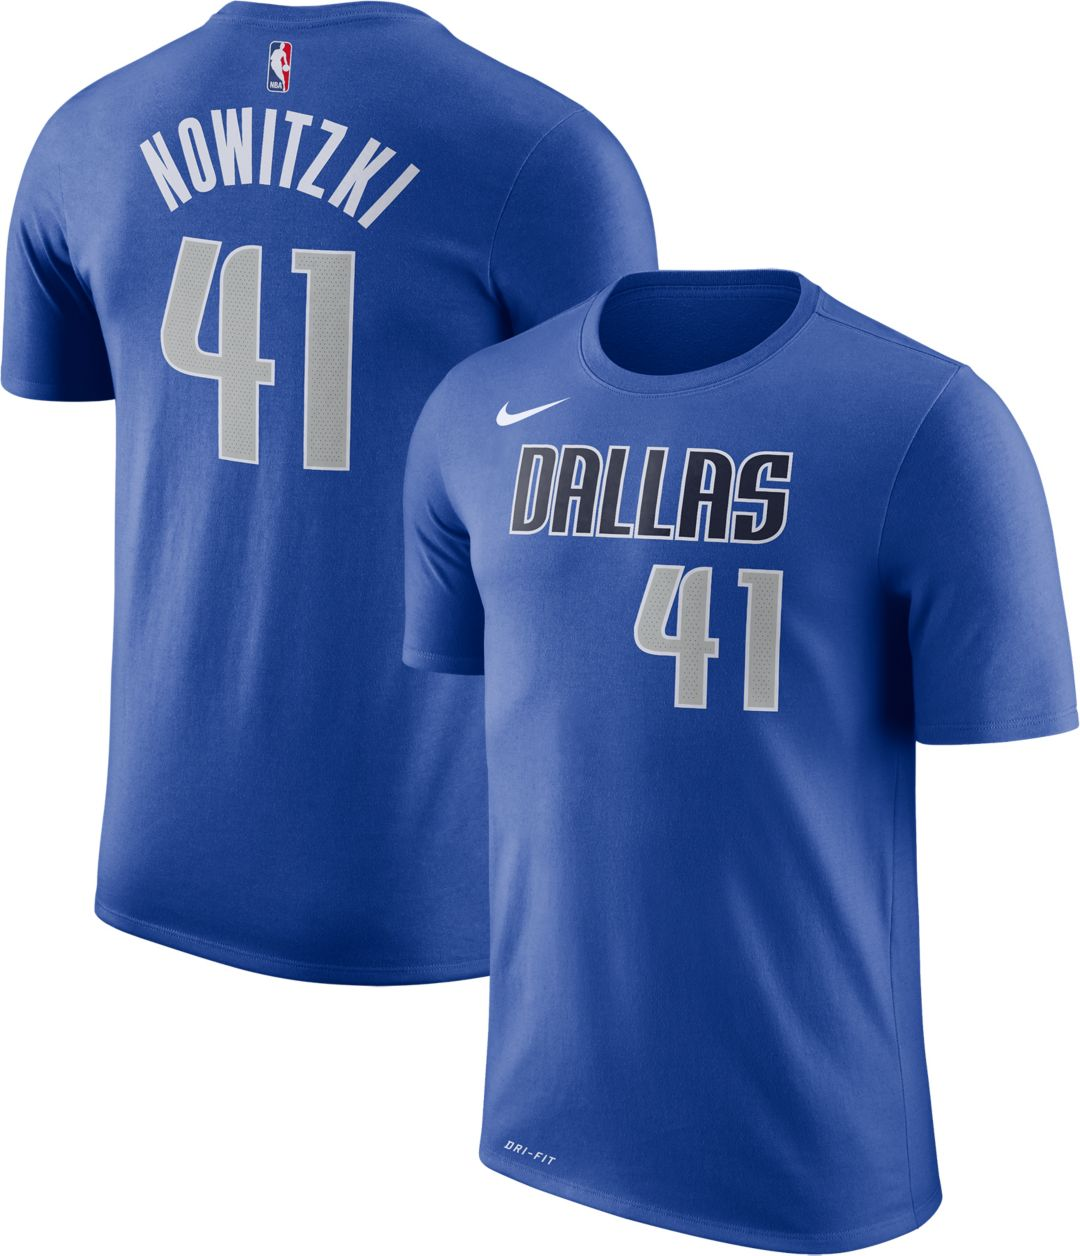 new arrival 9c420 7f6b2 Nike Men's Dallas Mavericks Dirk Nowitzki #41 Dri-FIT Royal T-Shirt